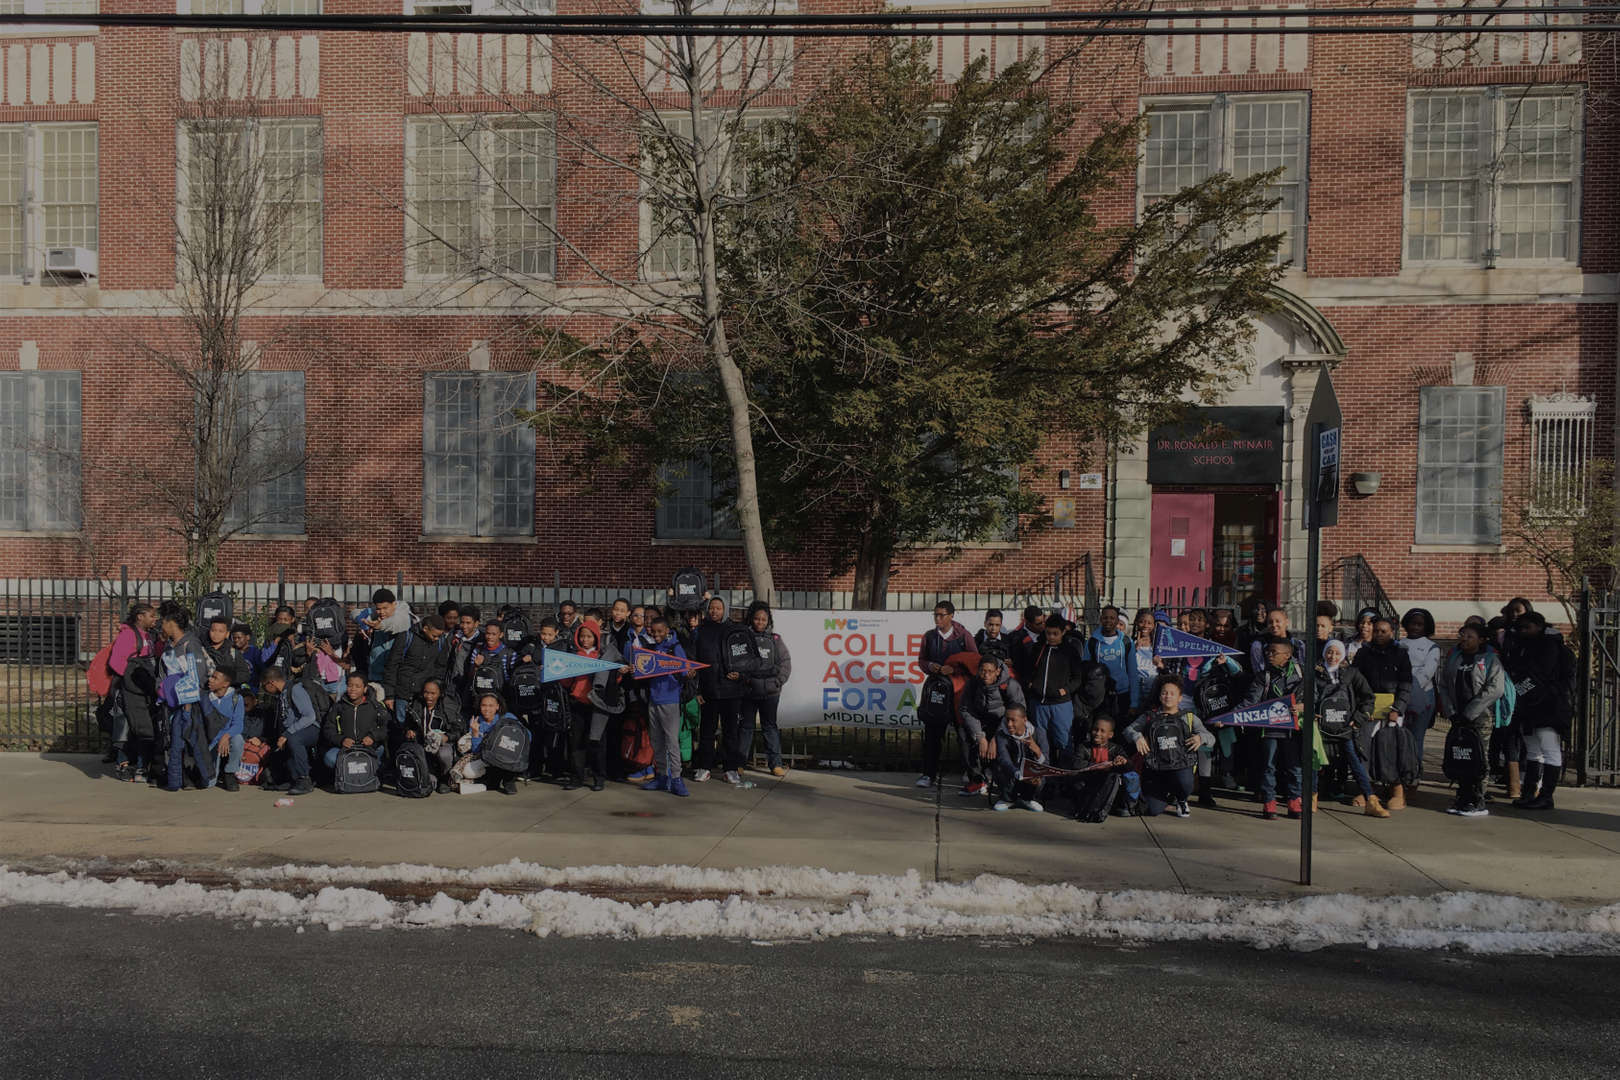 Students in front of 147 building